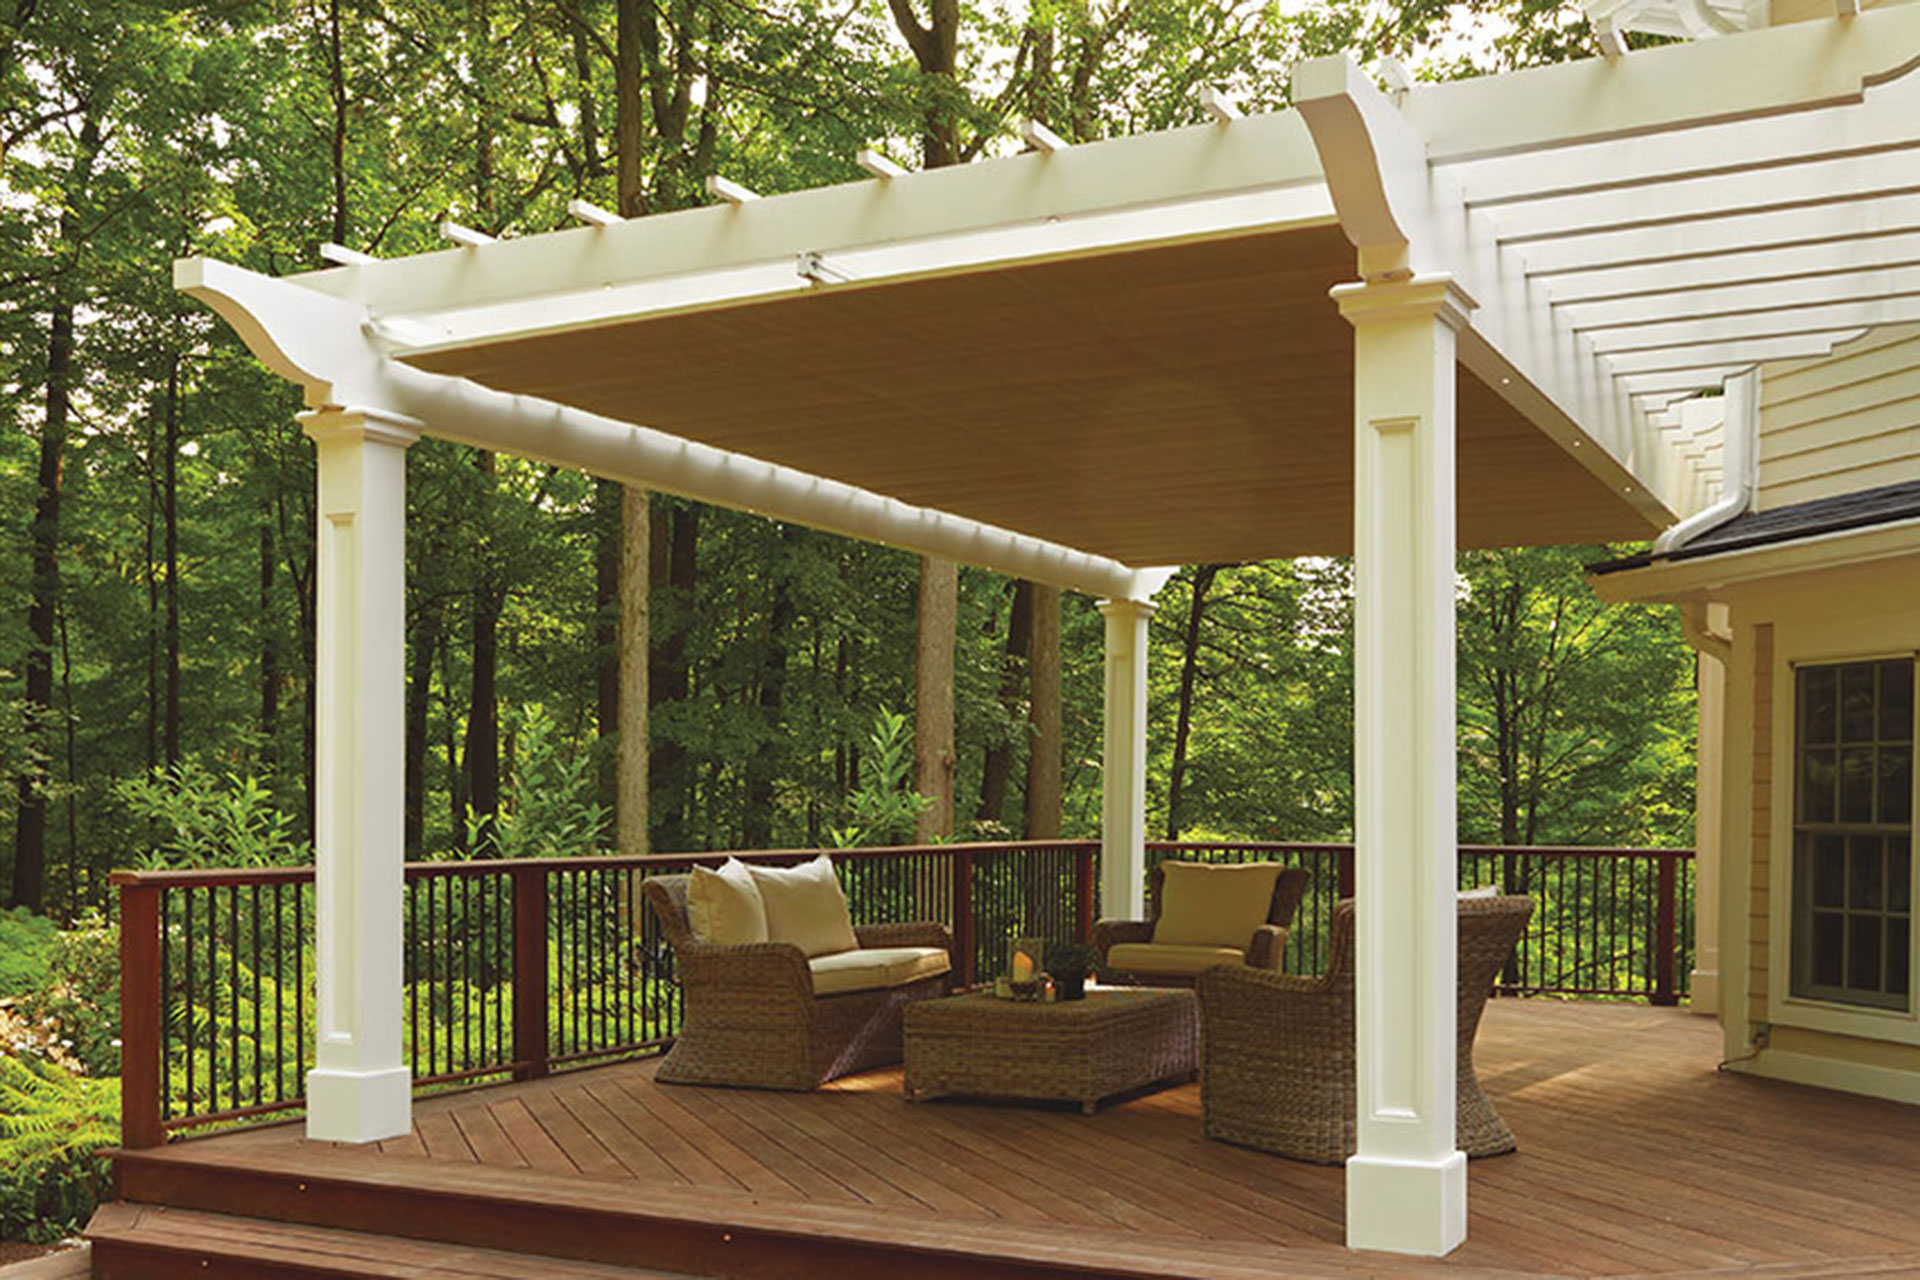 Decorative Pergola Shade Canopy